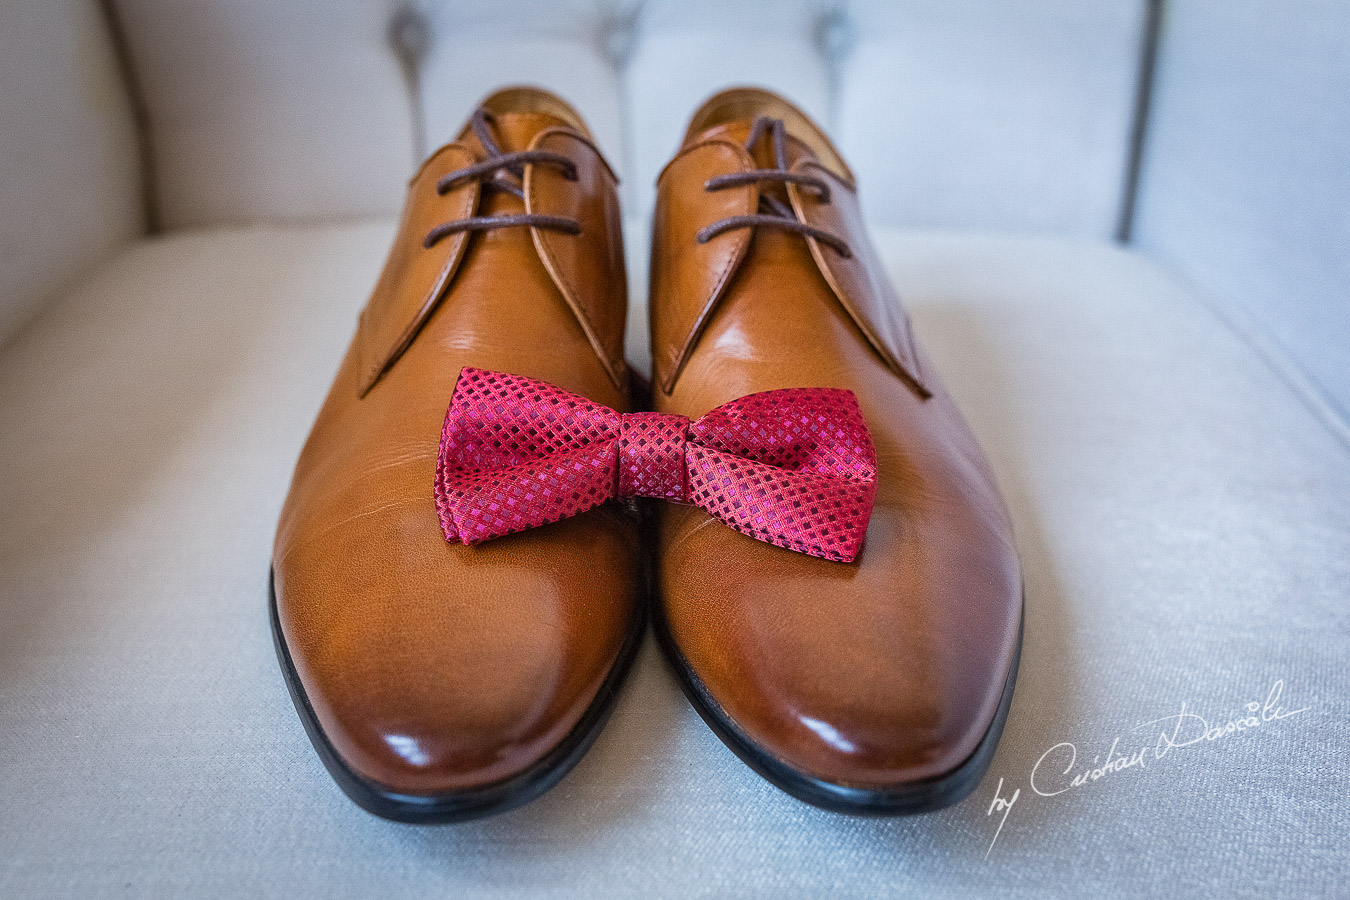 Groom's shoes and bow-tie photographed at a wedding in Nicosia by Cyprus Wedding Photographer Cristian Dascalu